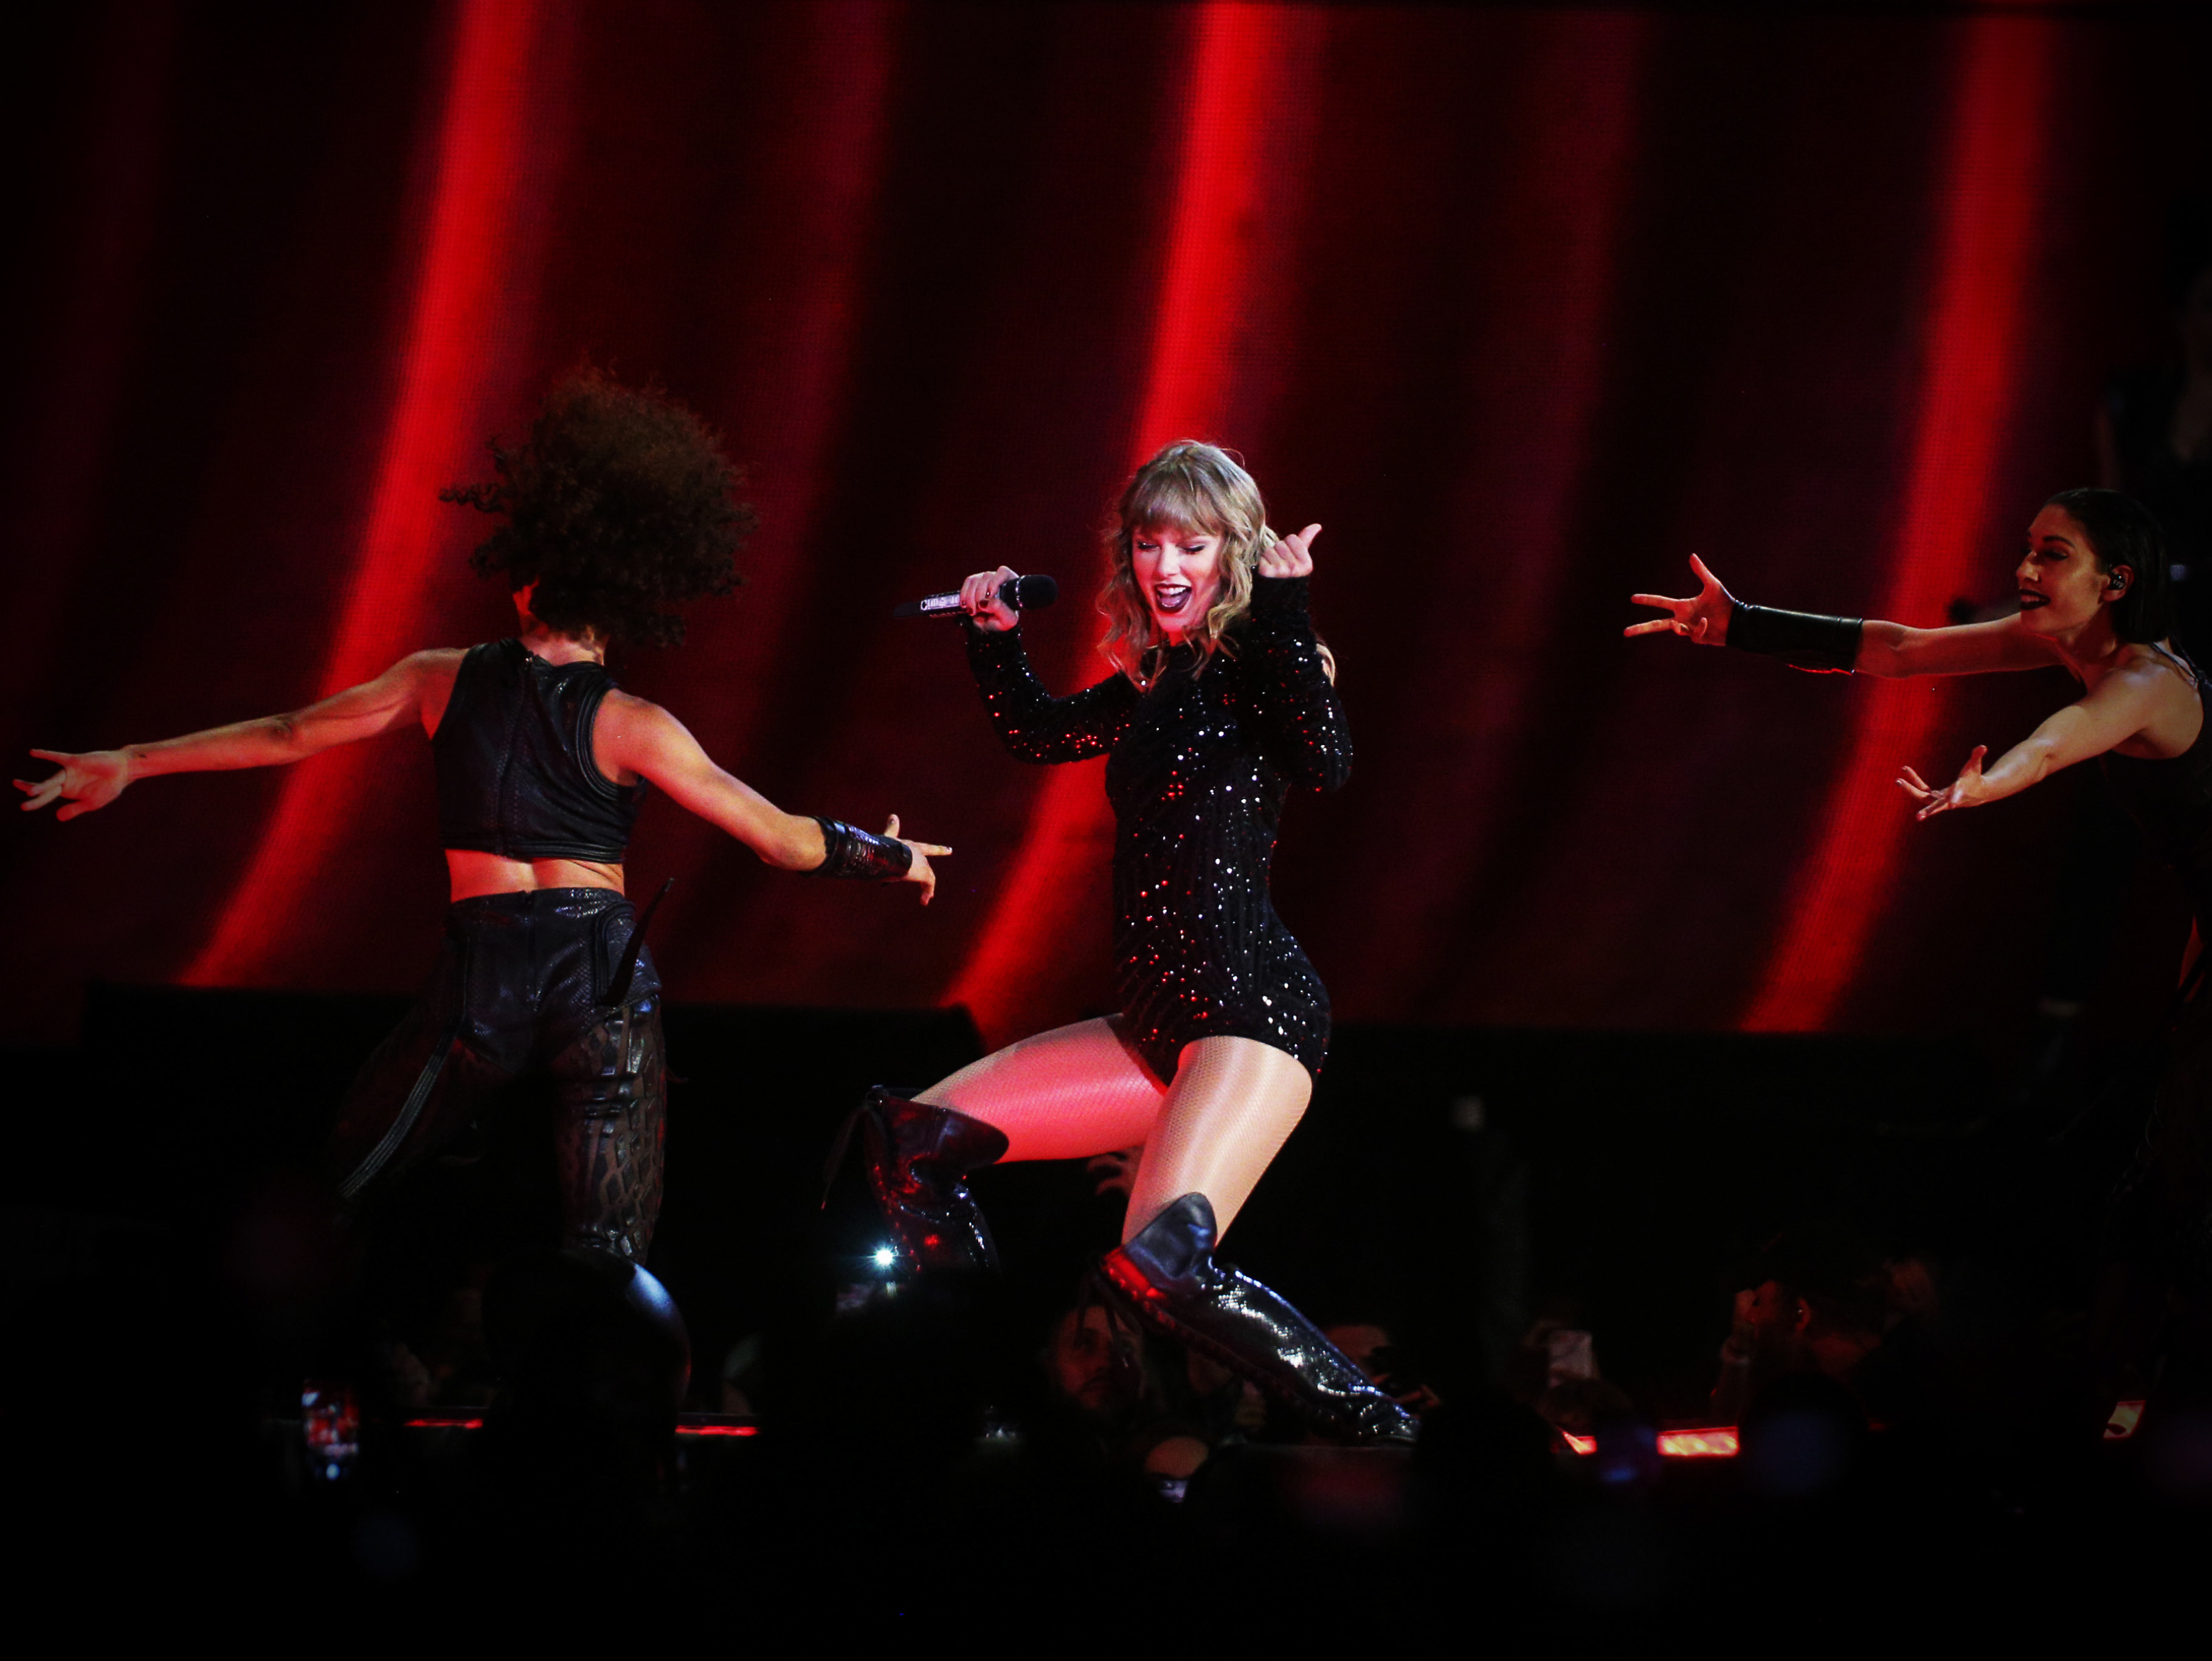 Review: Taylor Swift lights up Tampa with majestic, open